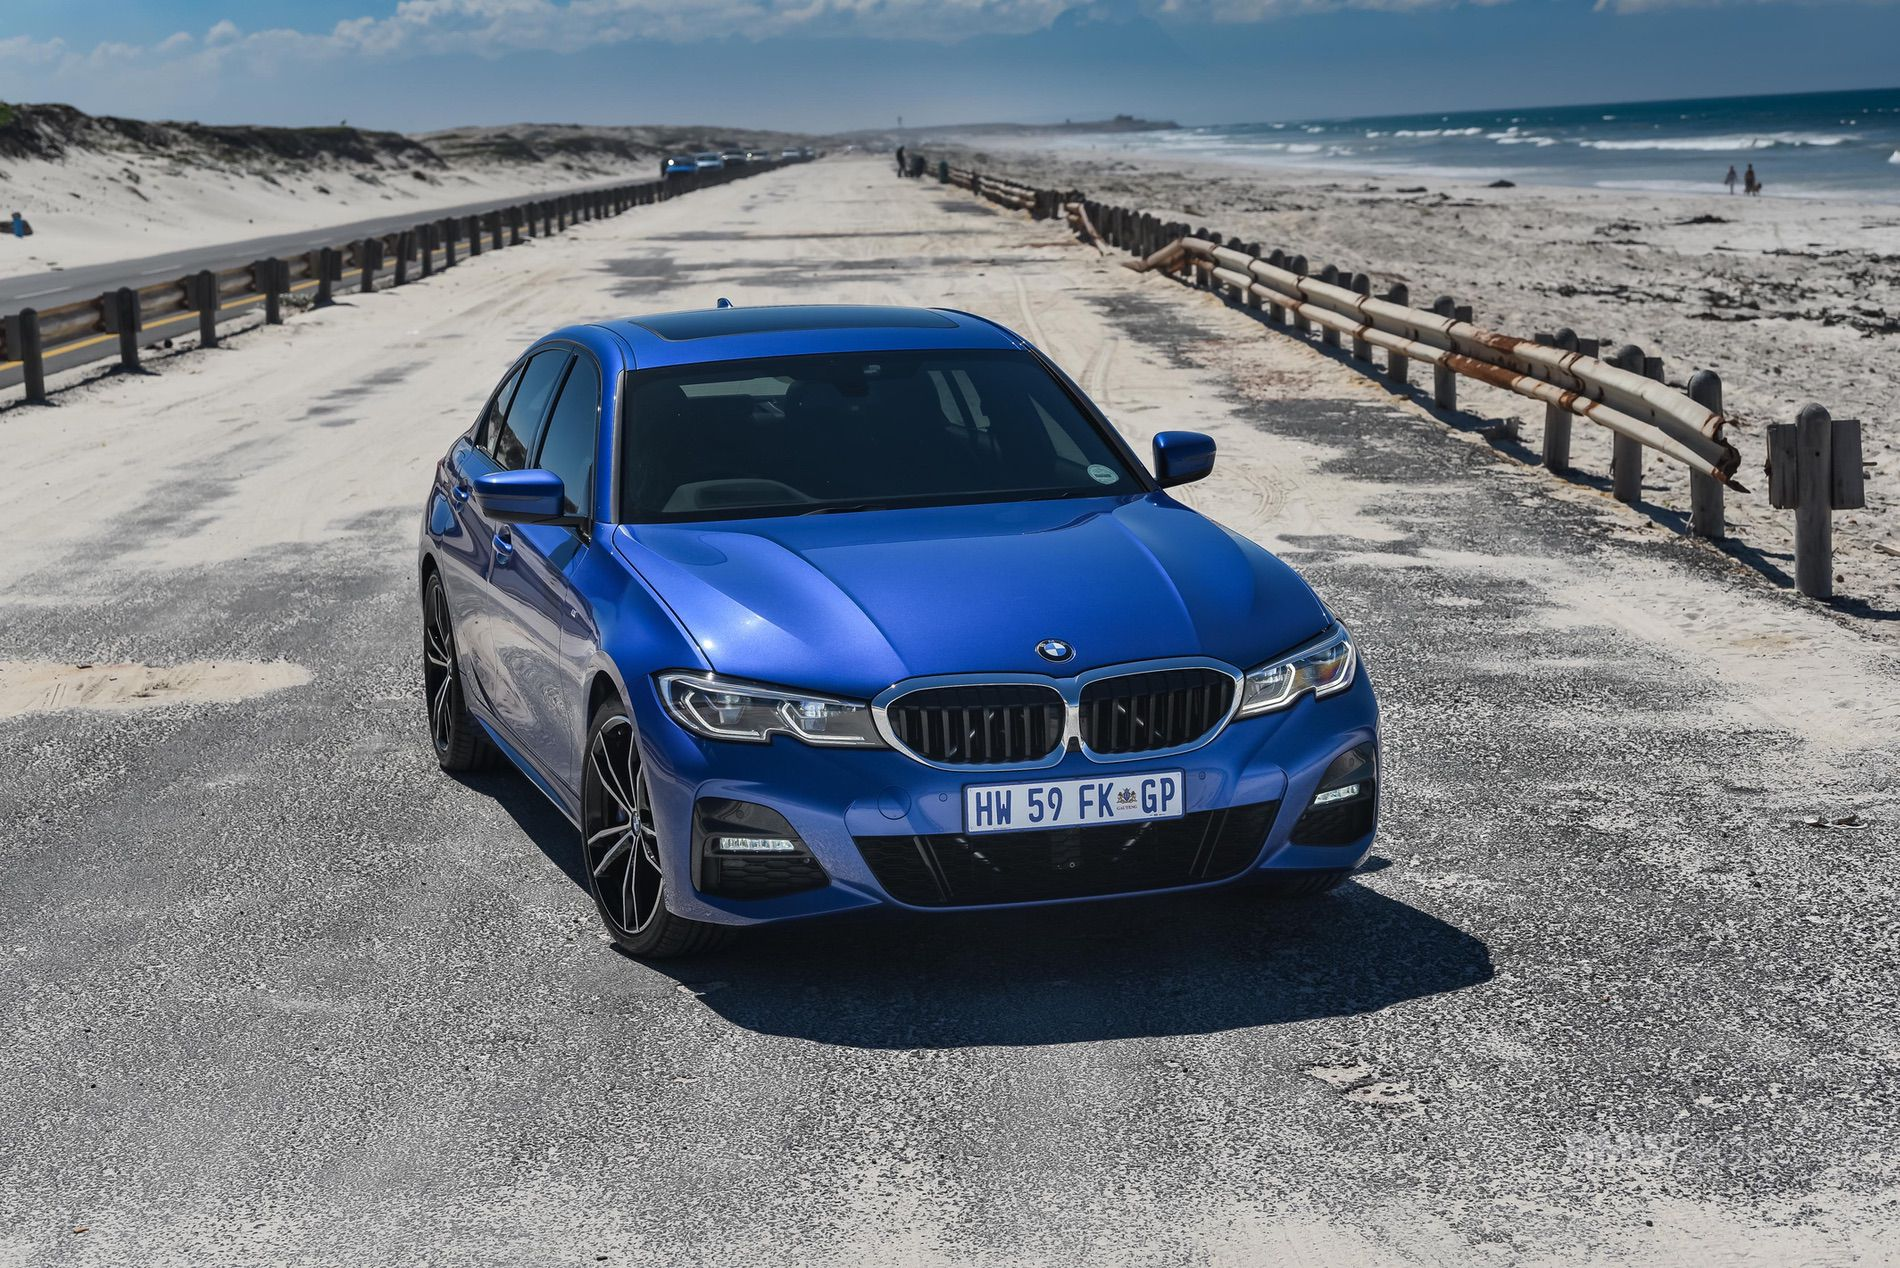 BMW G20 3 SERIES Portimao Blue 88